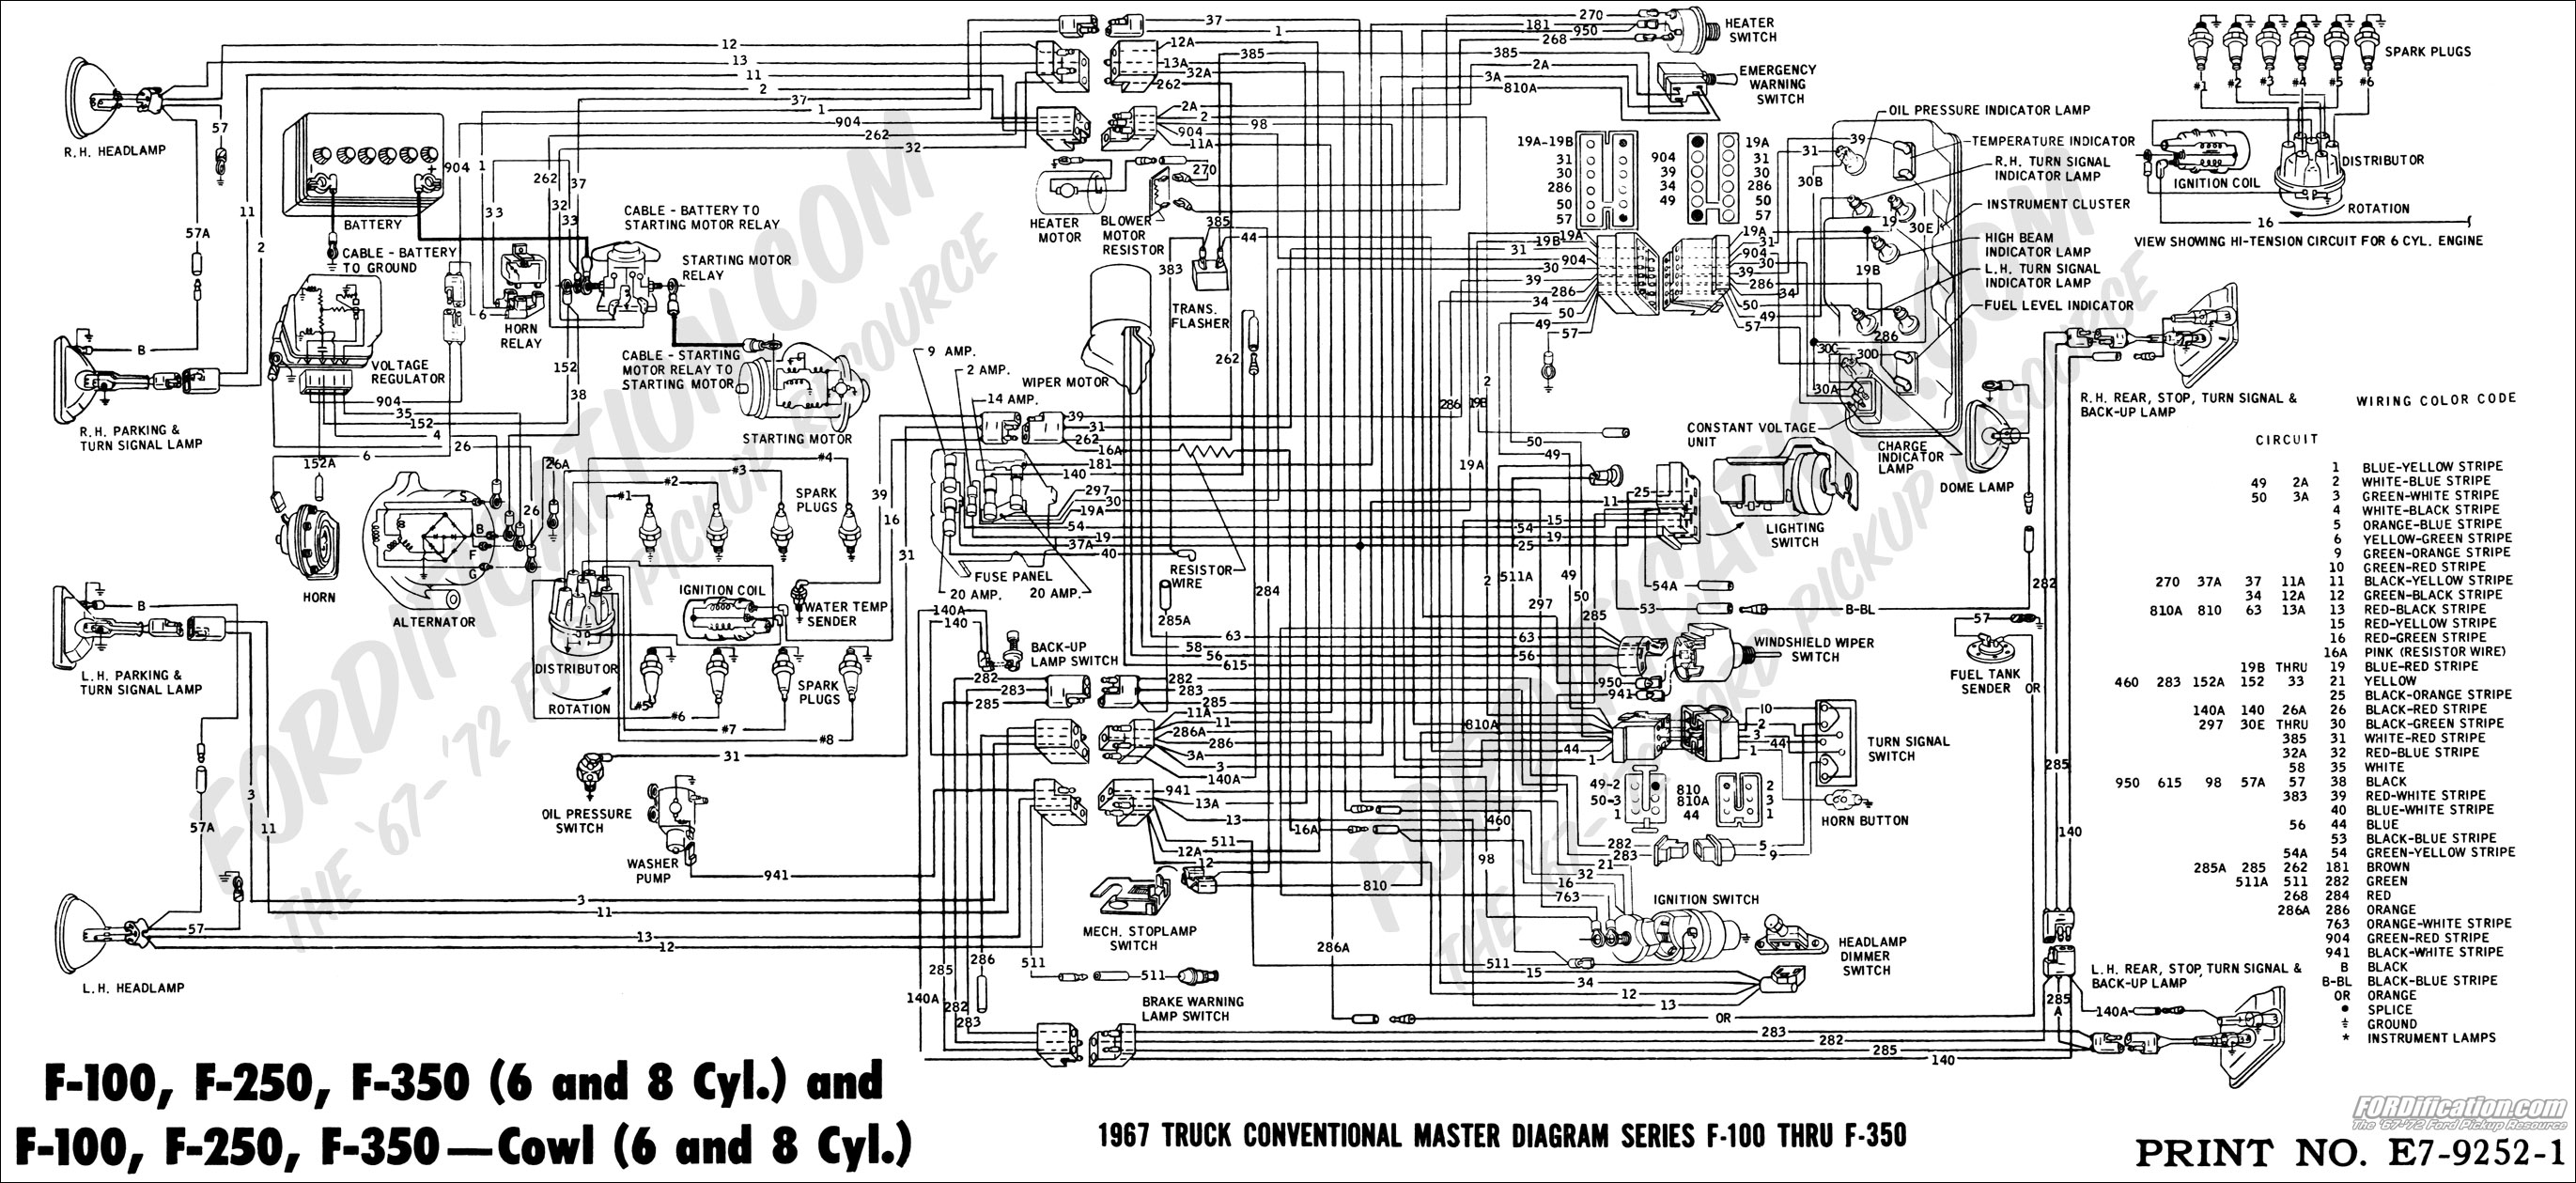 67masterdiagram ford truck technical drawings and schematics section h wiring 1989 ford f150 ignition switch wiring diagram at creativeand.co